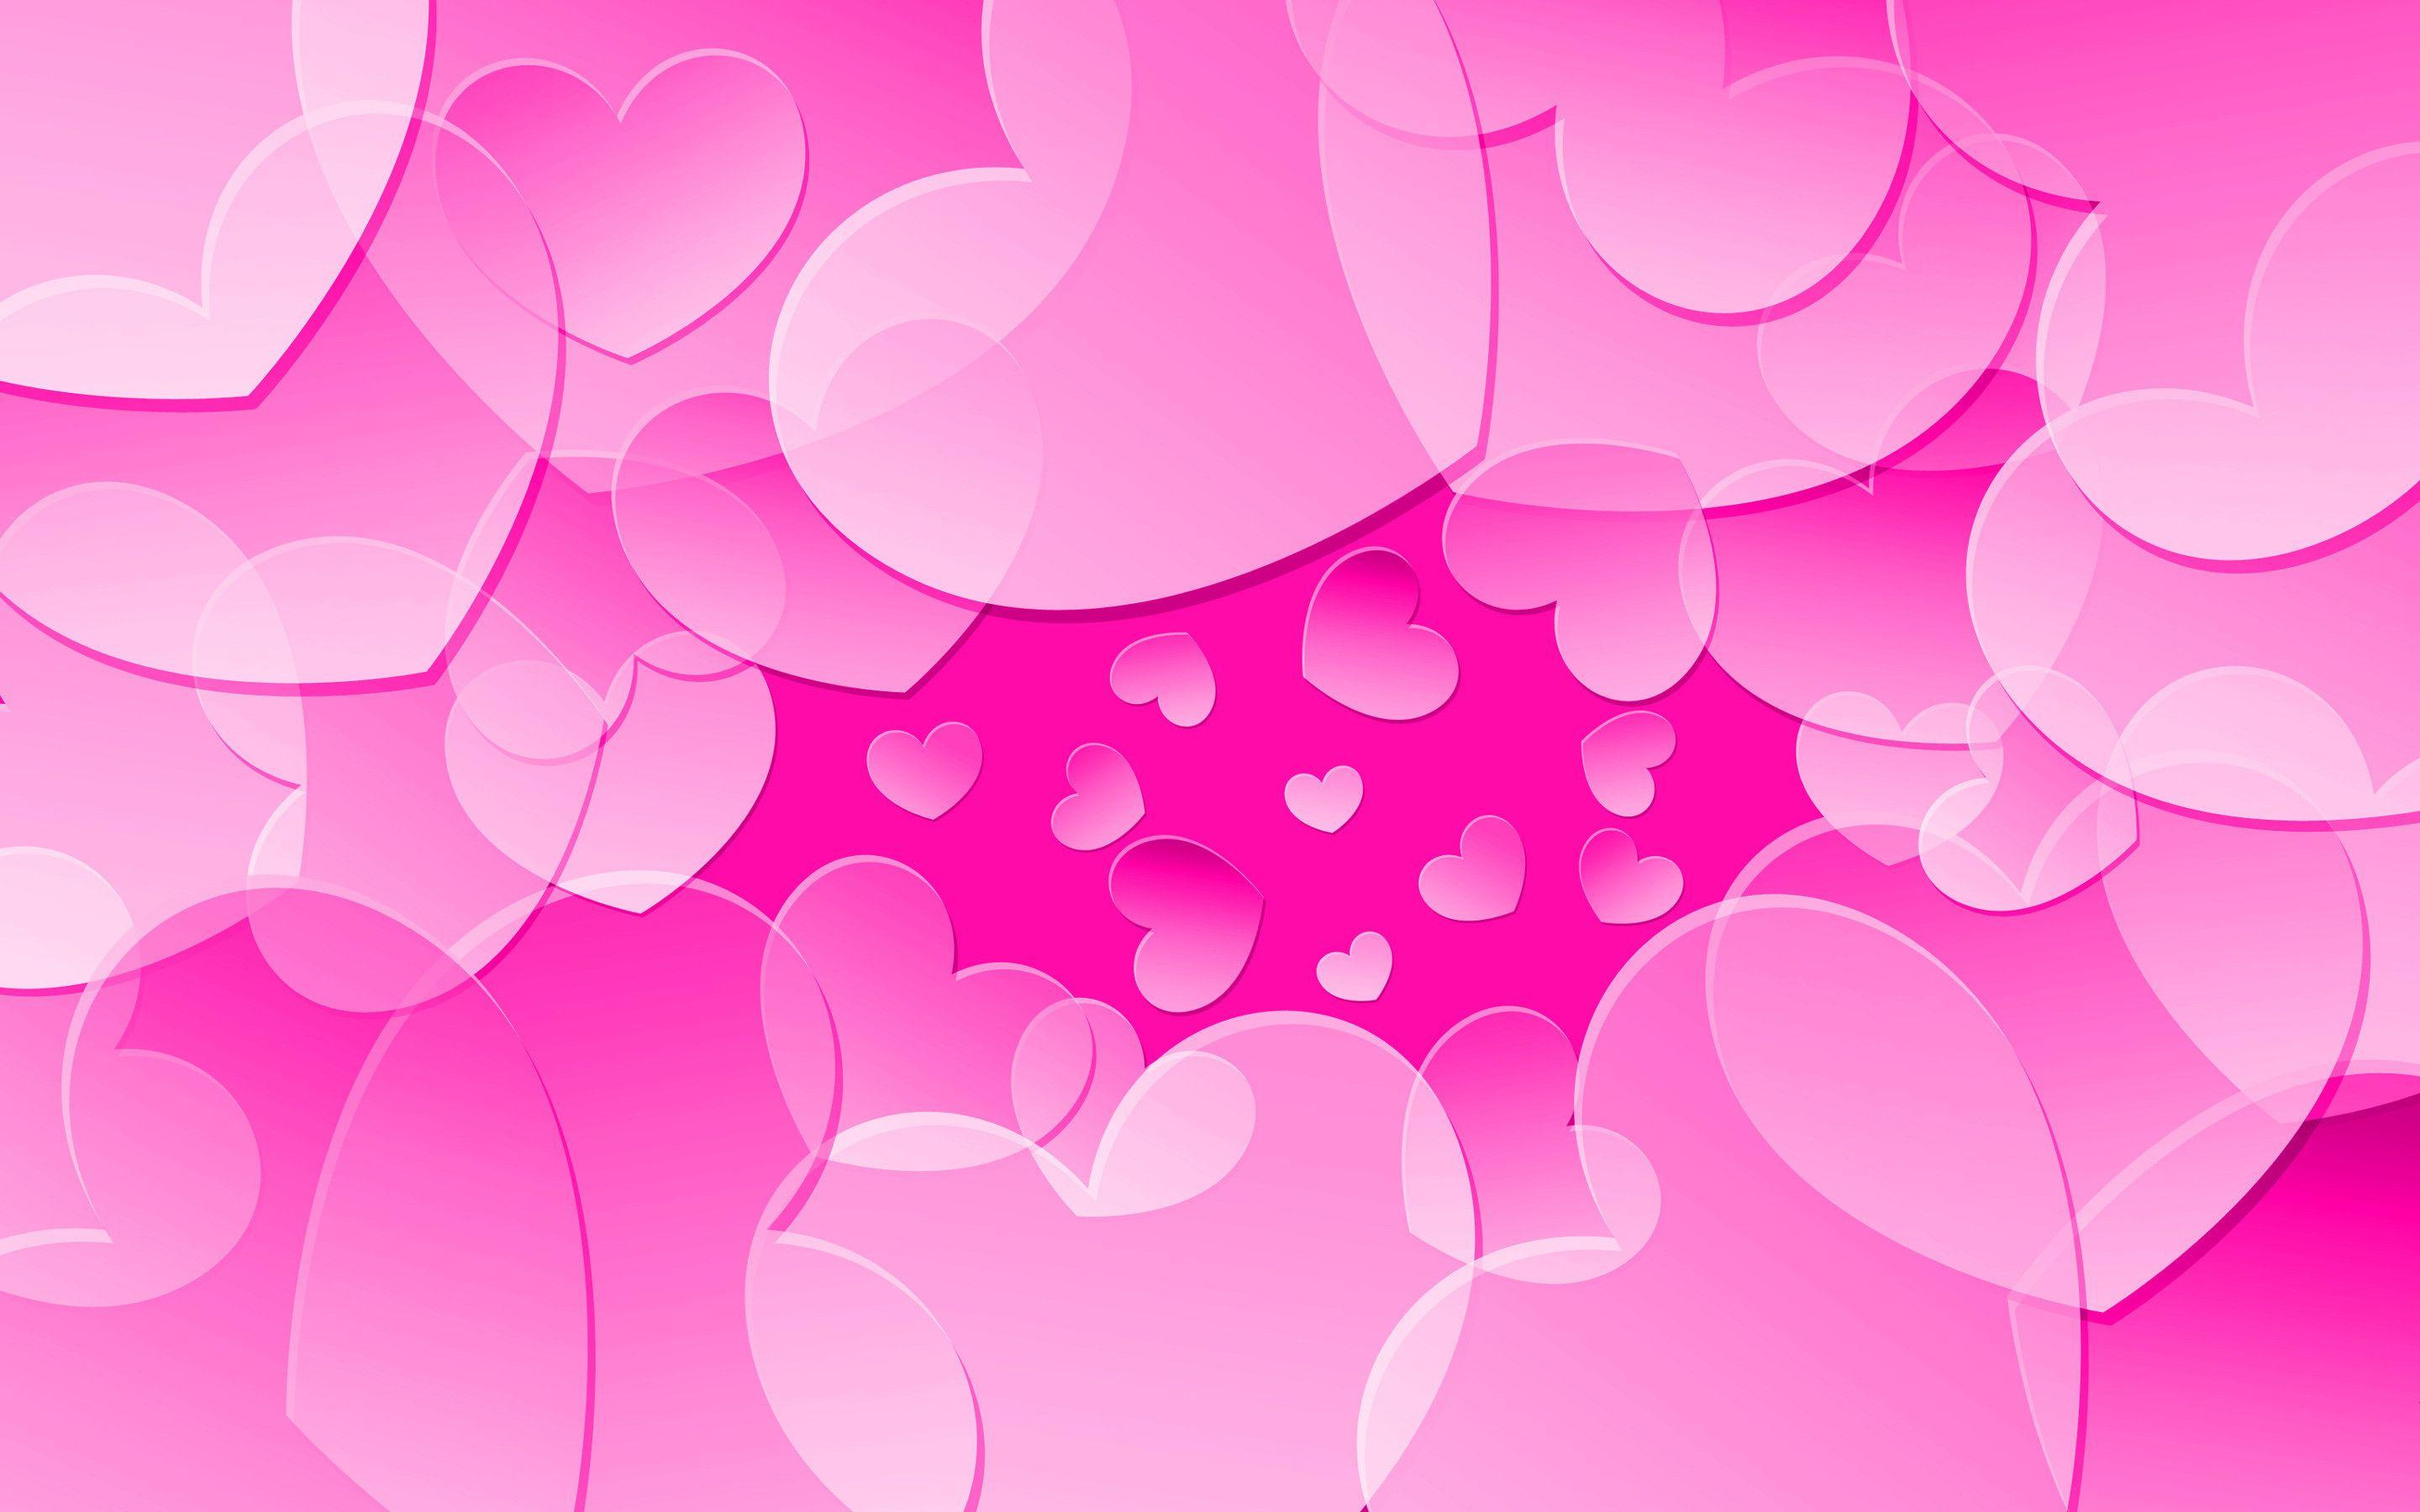 Love Wallpaper Pick : Pink Heart Wallpapers - Wallpaper cave